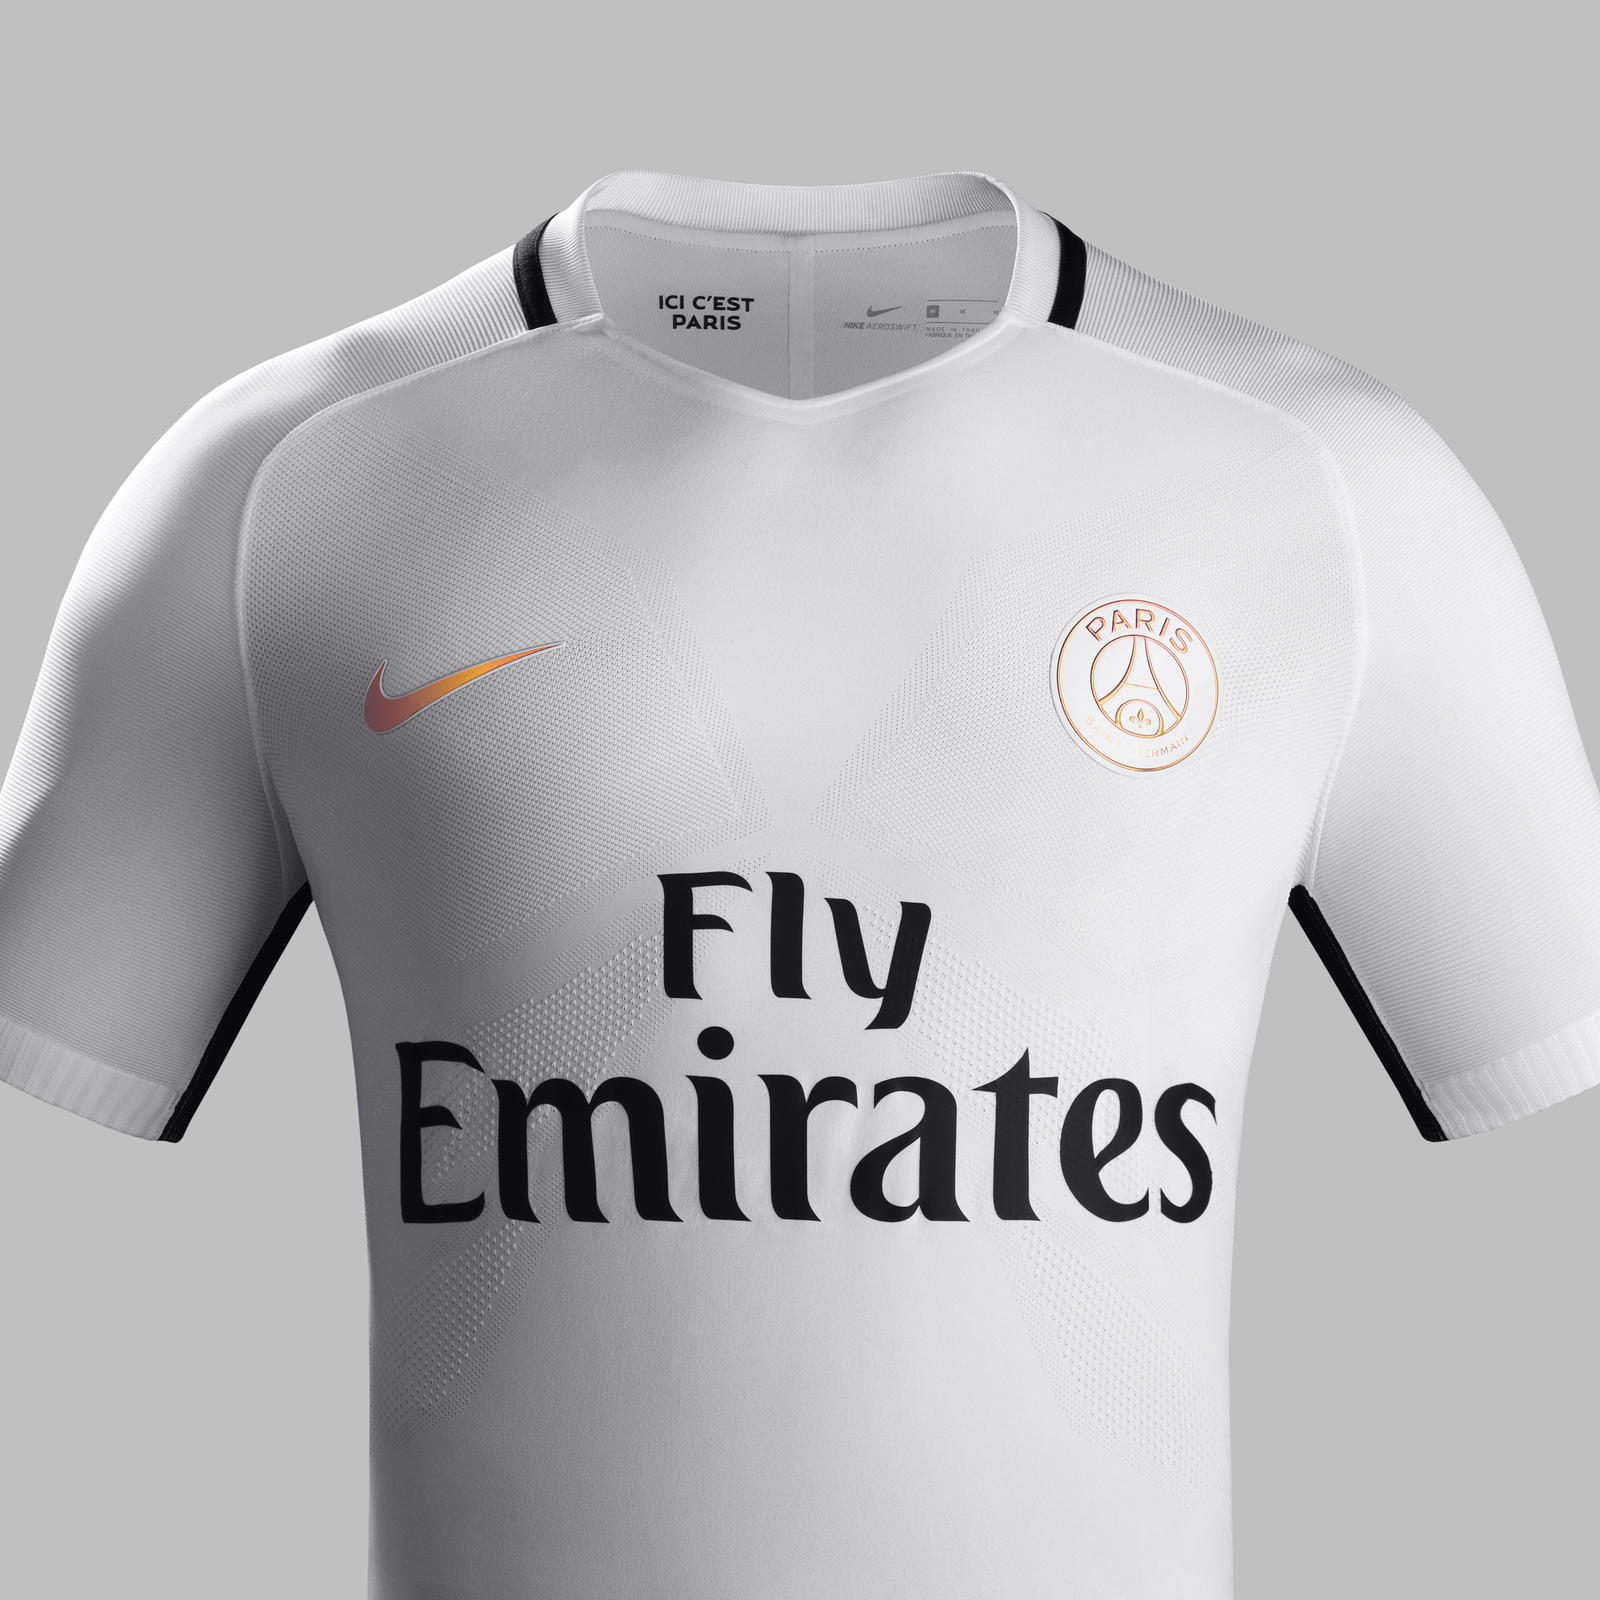 Fa16 CK Comms 3RD Front Match PSG R. PARIS Saint-Germain 3rd kit 2016-2017 Crest.  Fa16 CK Comms 3RD Venting Match PSG R fa2dd9e856caf